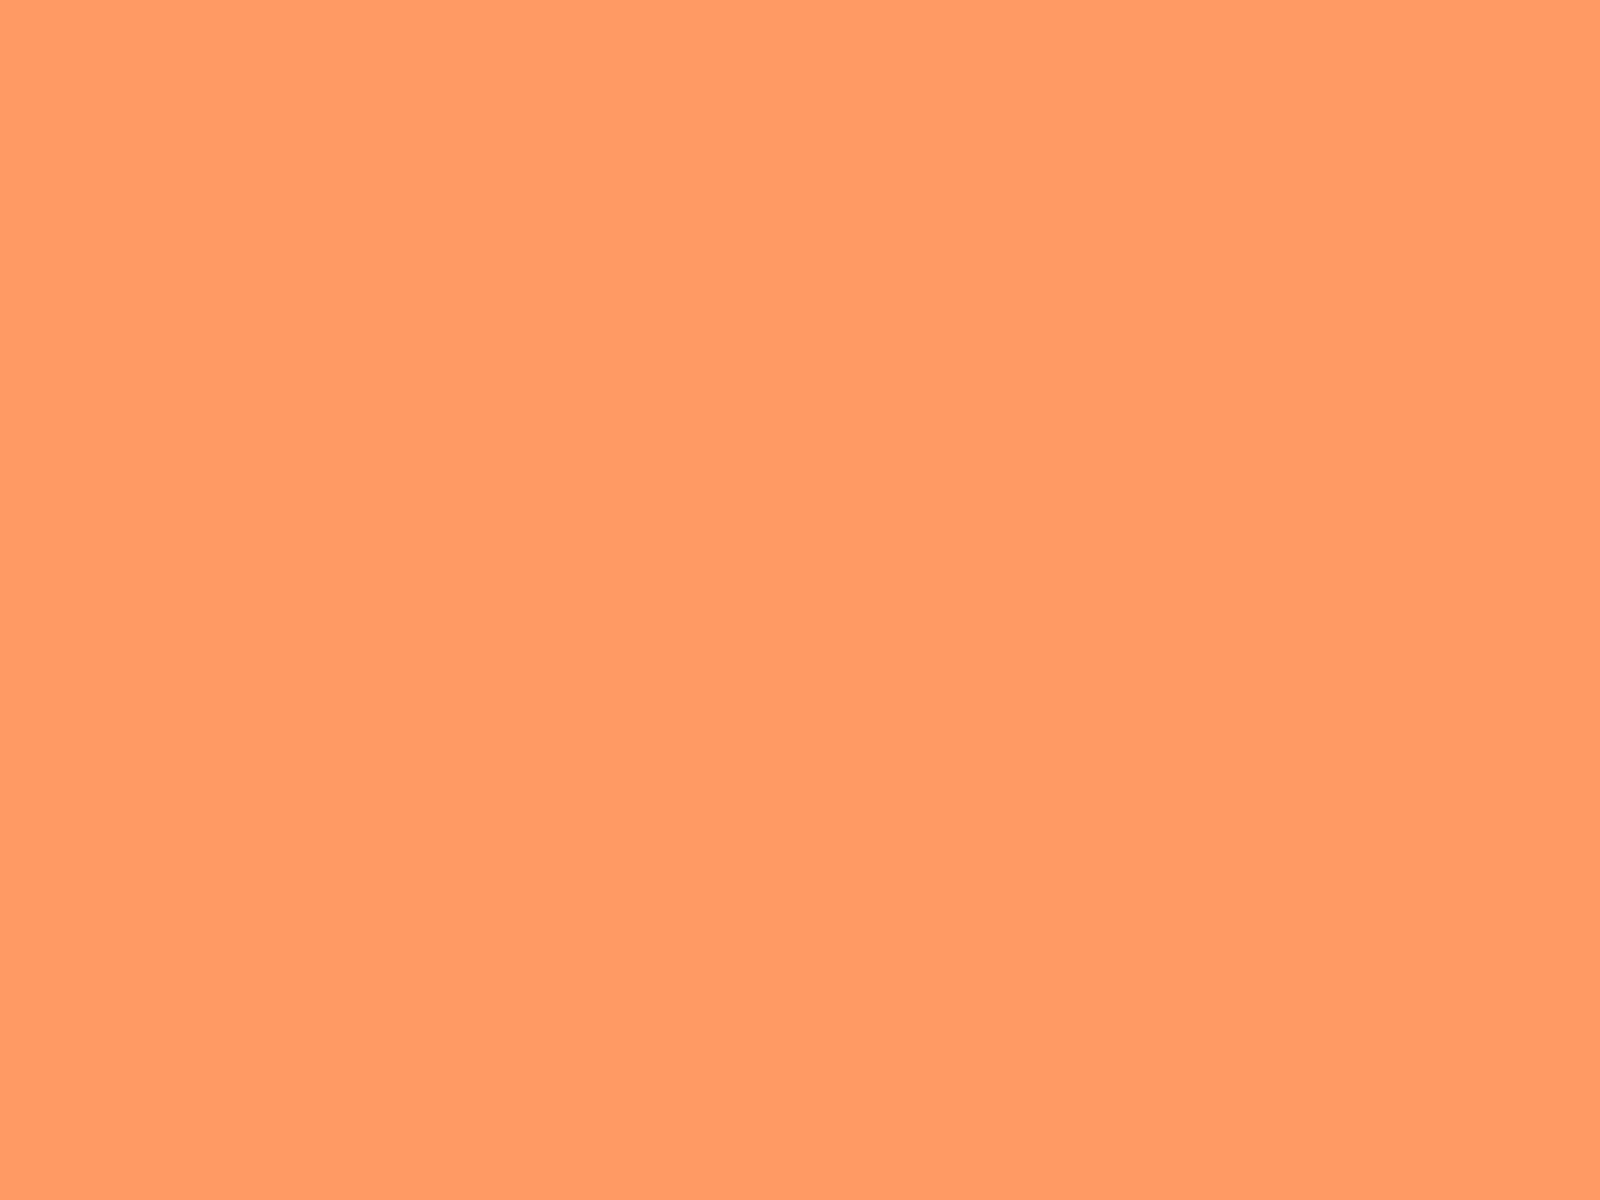 1600x1200 Atomic Tangerine Solid Color Background